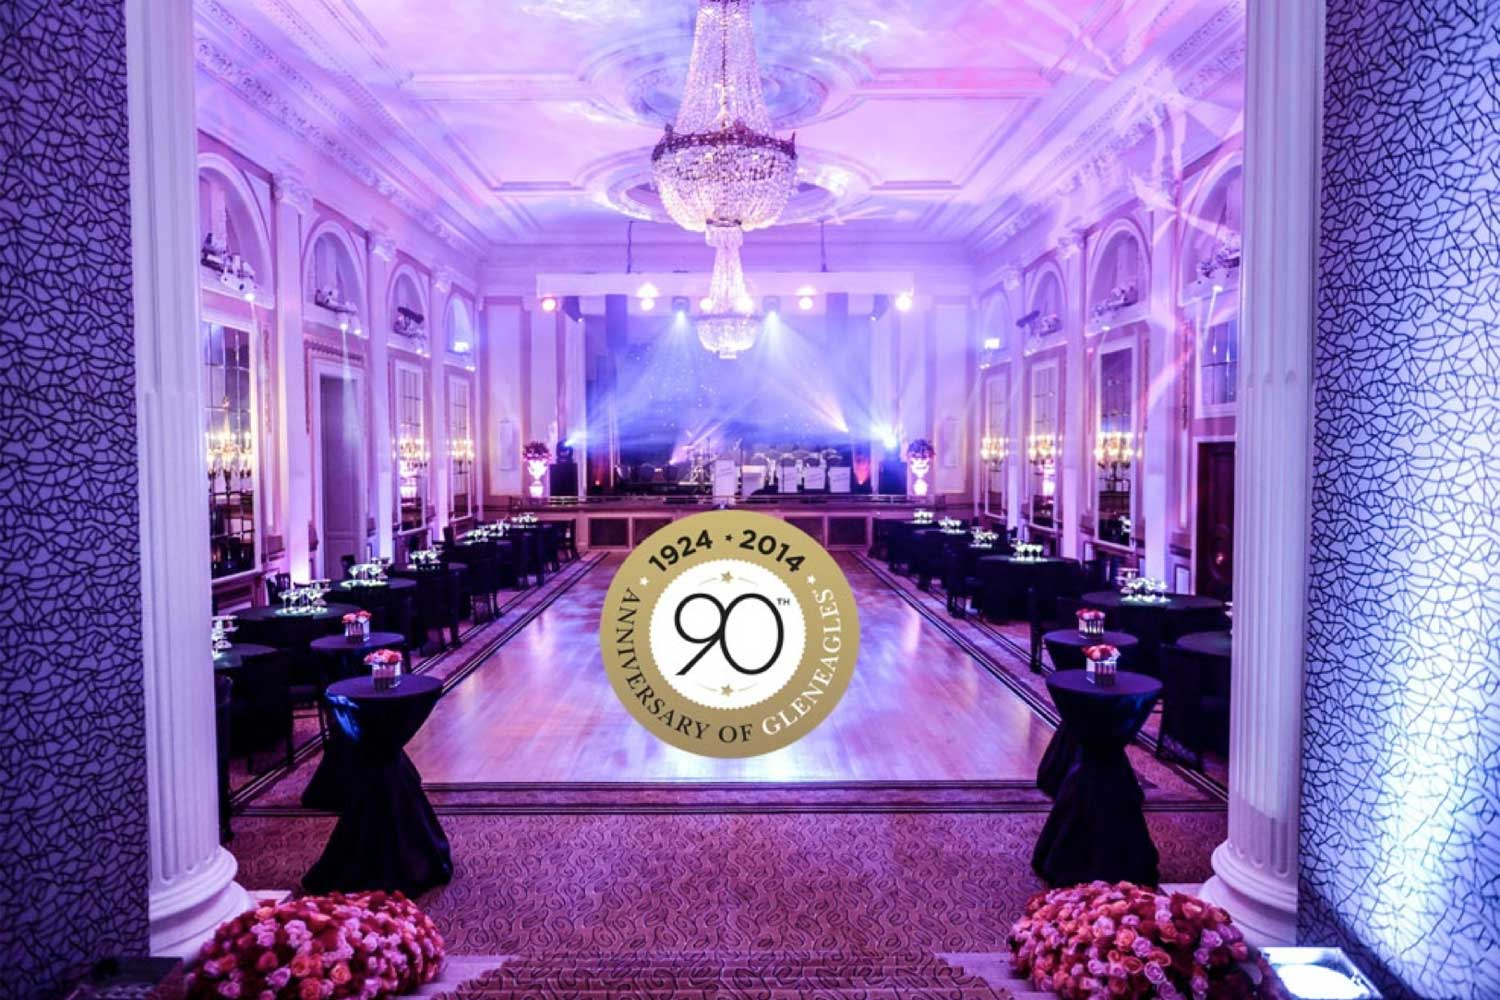 Anniversary At Gleneagles, Creative Platform, Prestigious Star Awards